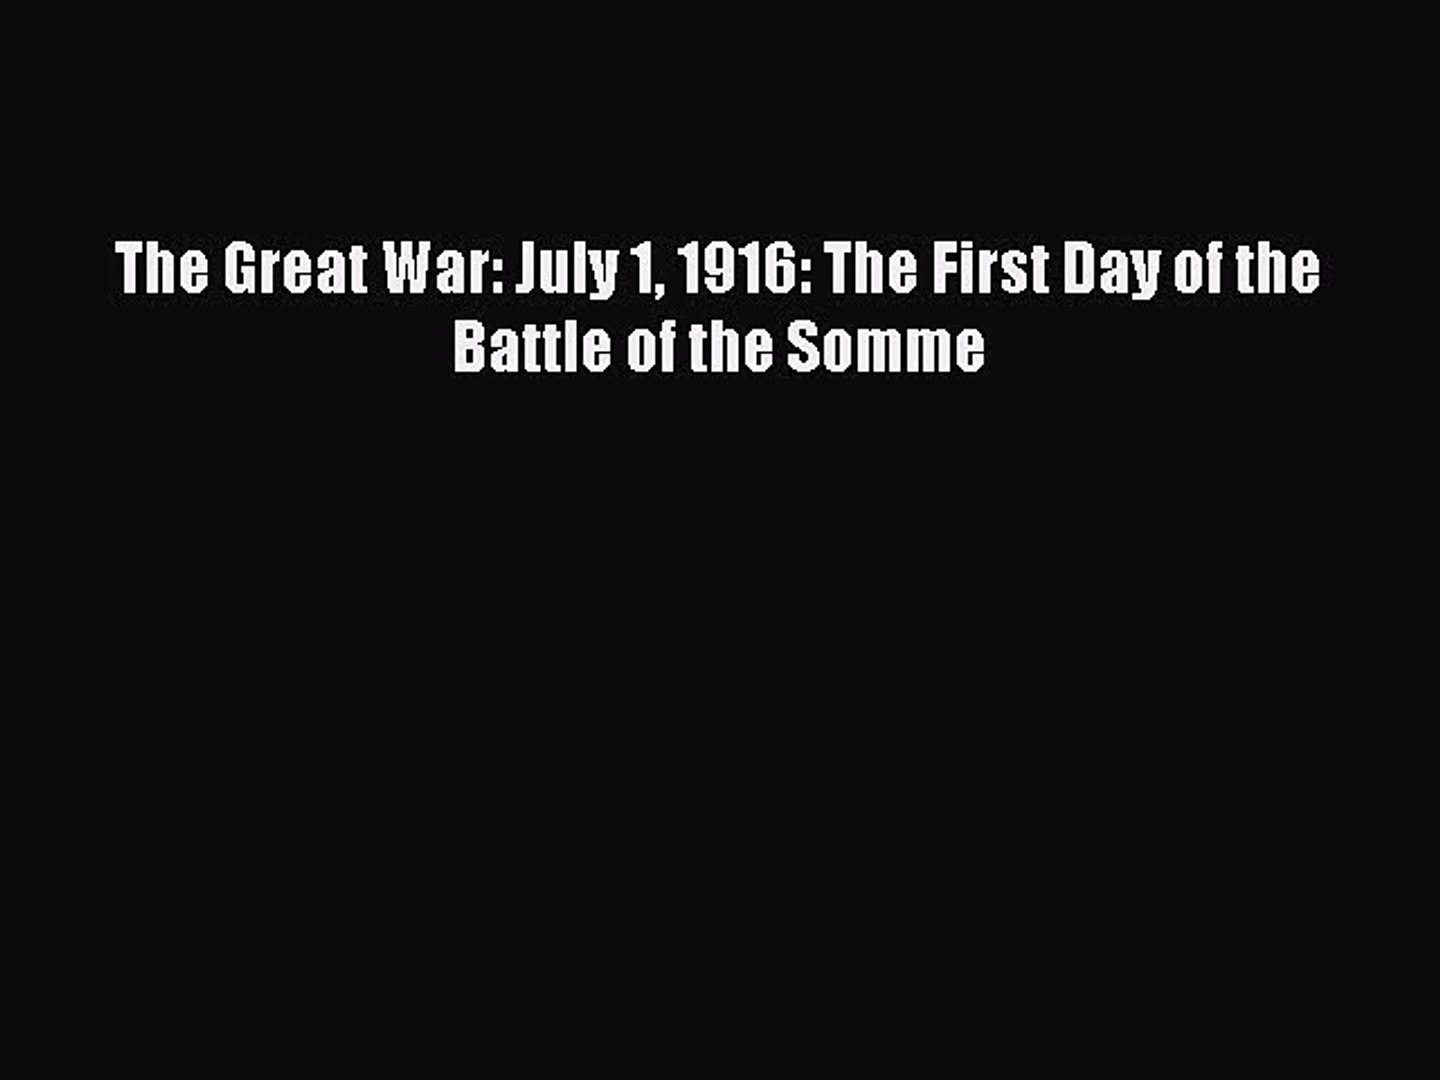 Download The Great War: July 1 1916: The First Day of the Battle of the Somme  EBook